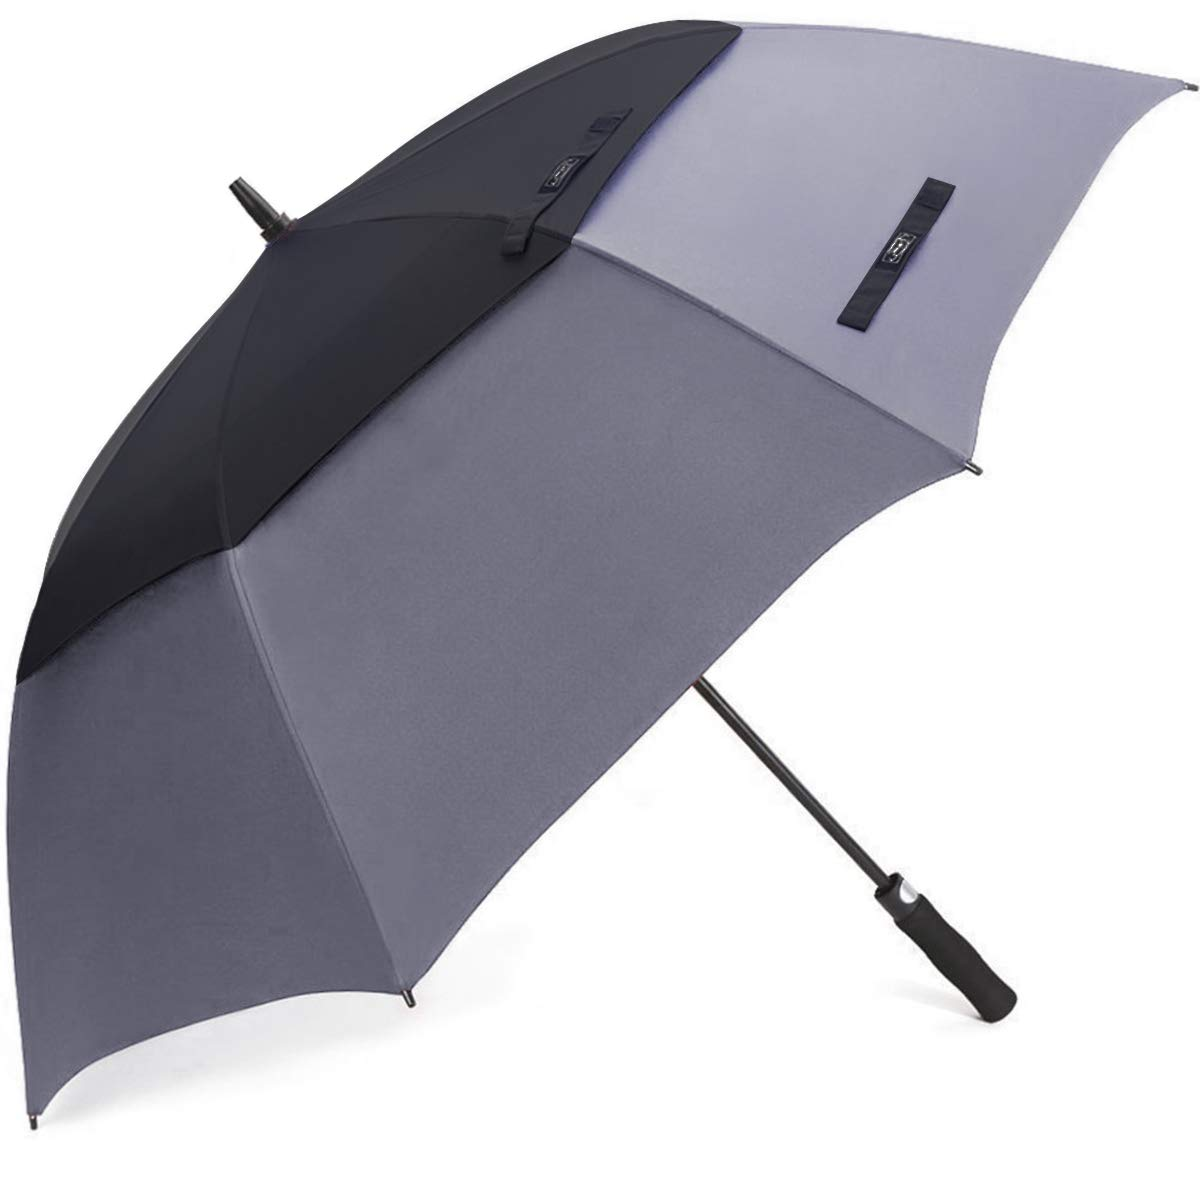 G4Free 68 Inch Automatic Open Golf Umbrella Extra Large Oversize Double Canopy Vented Windproof Waterproof Stick Umbrellas(Black/Grey) by G4Free